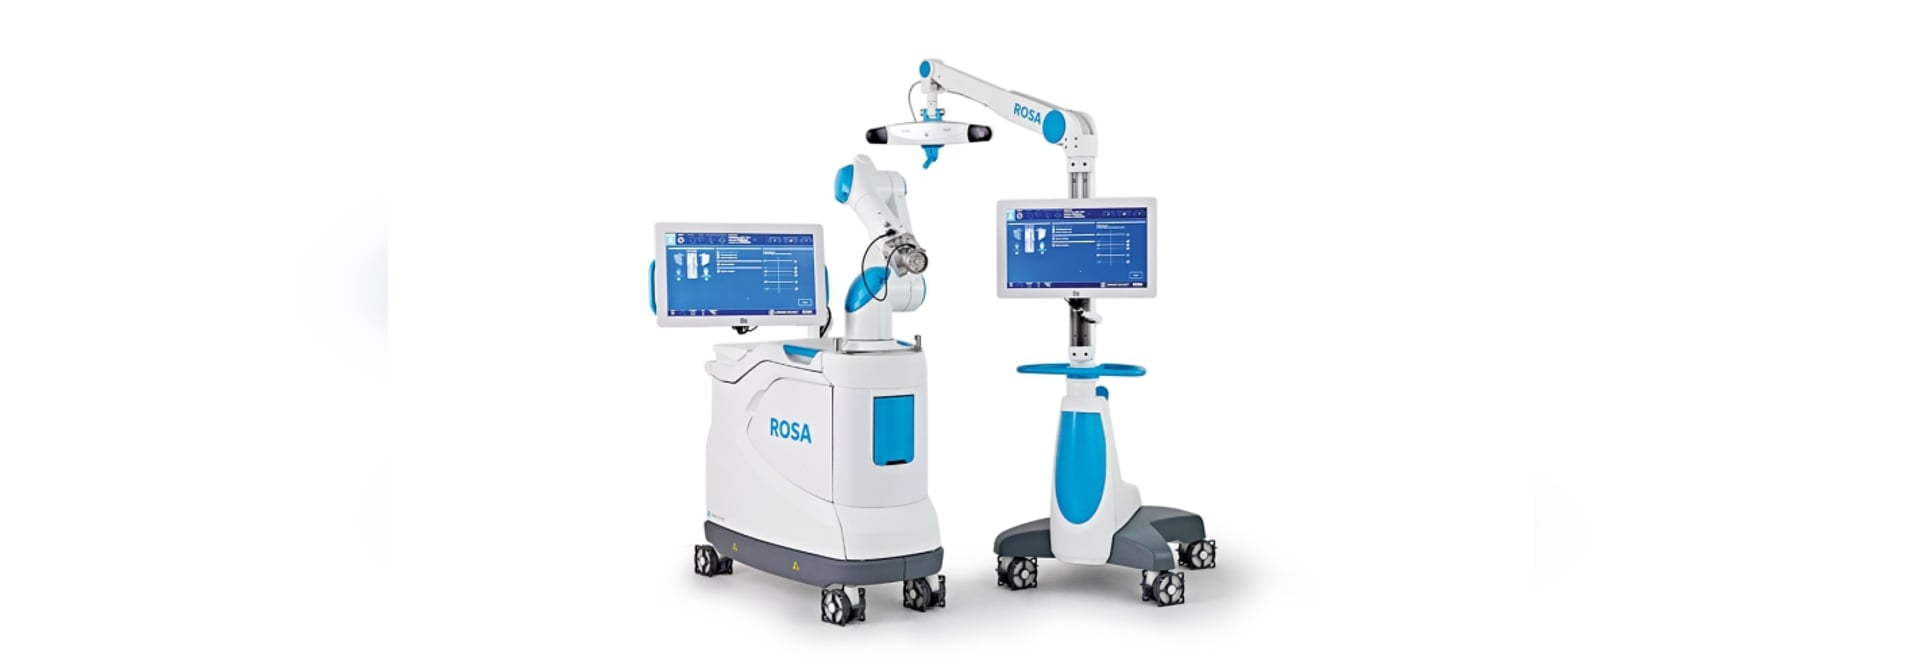 FDA cleared Zimmer Biomet's Rosa Knee System for use in robotically-assisted total knee replacement procedures in January 2019. That's just one of the innovation milestones that stood out this year...